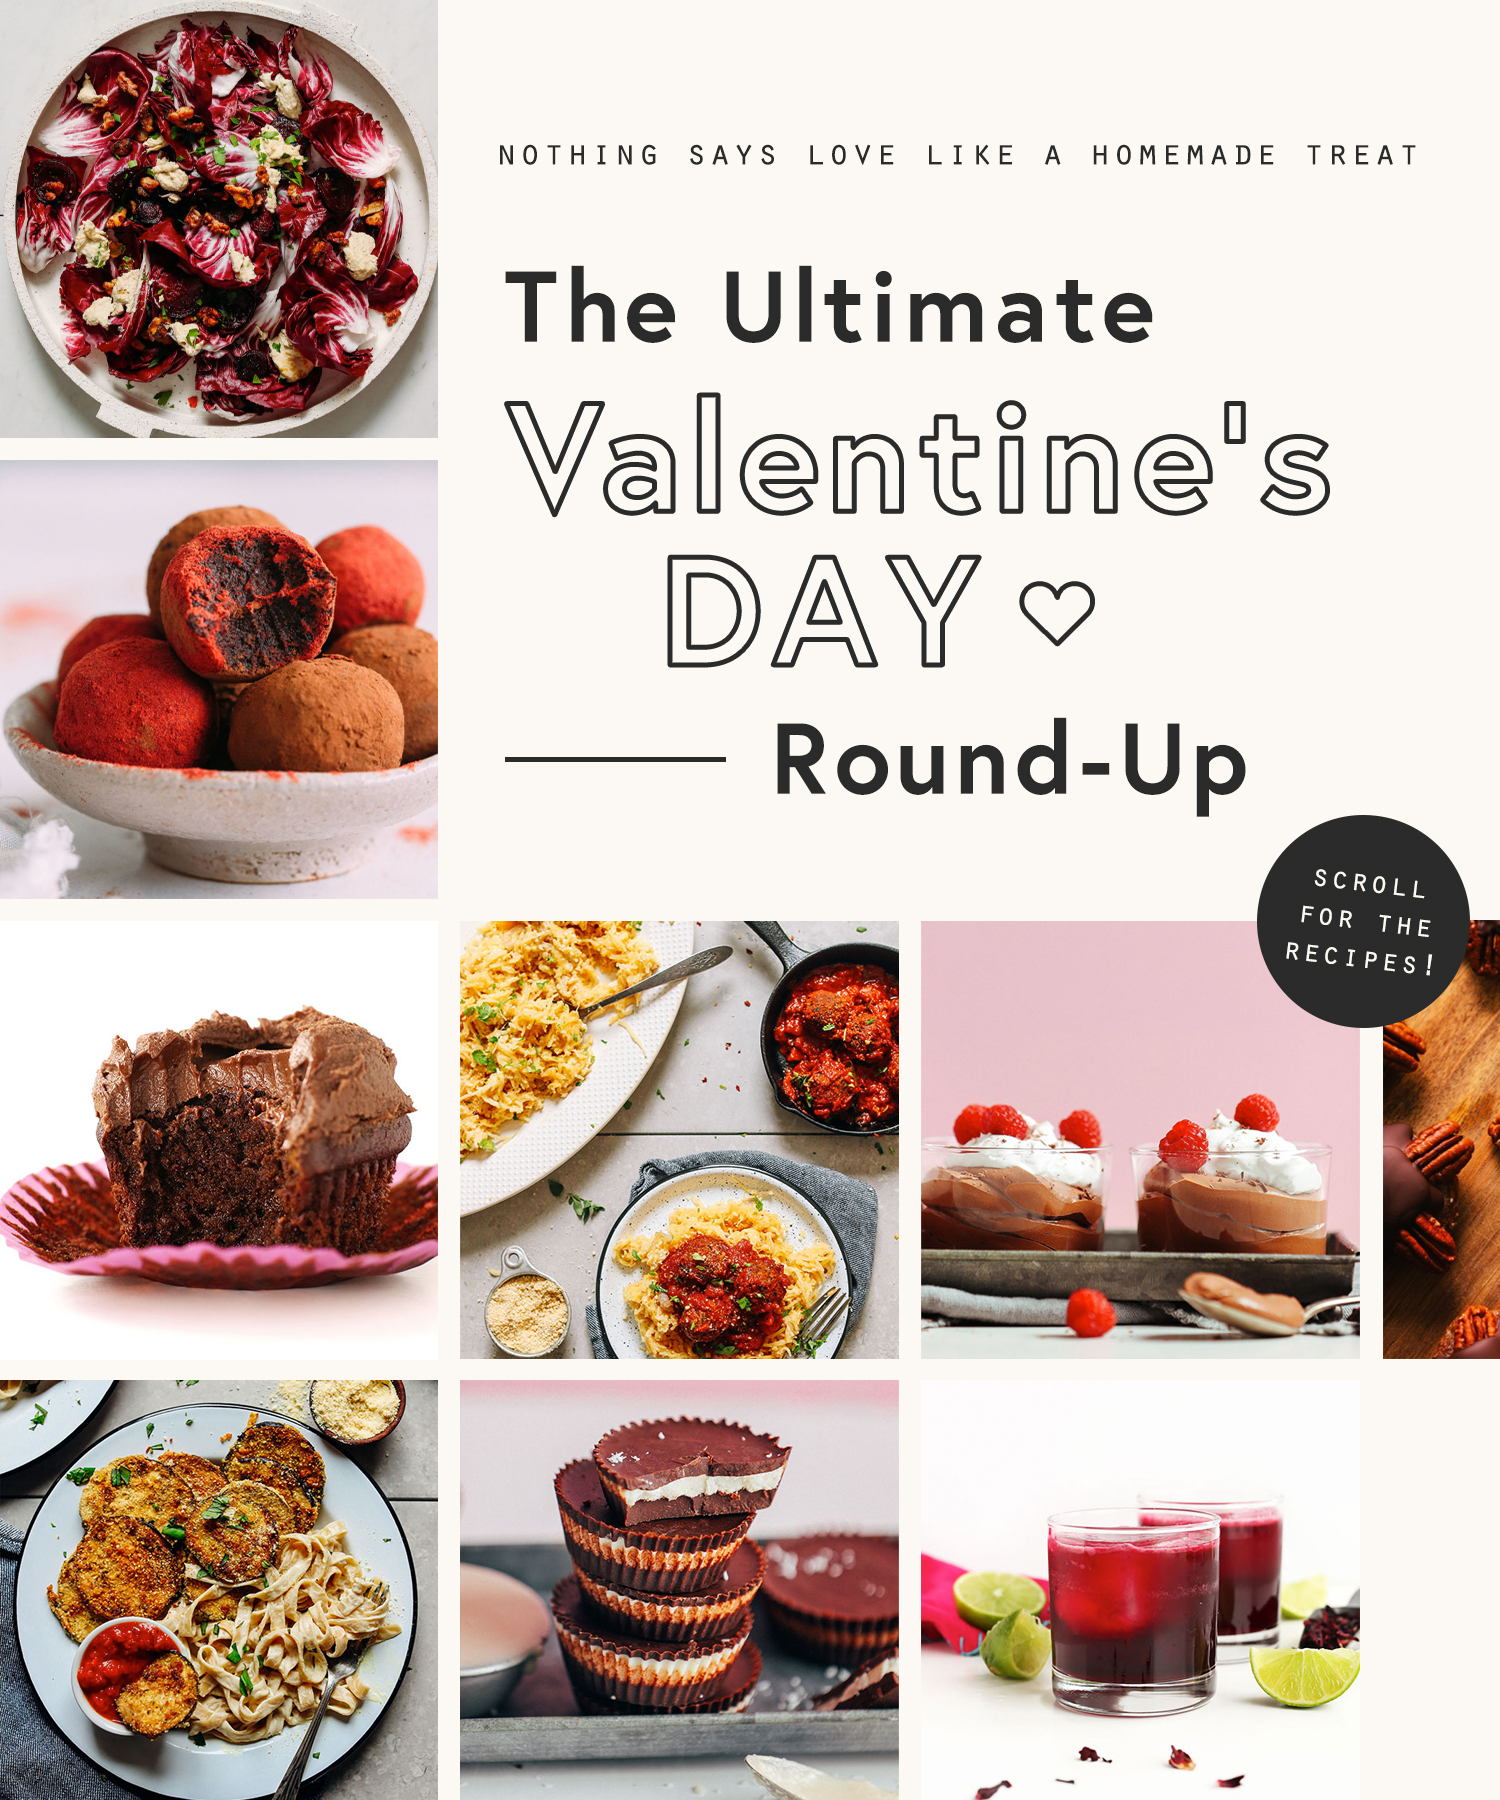 Assortment of valentine's day recipes for a homemade Vegan Valentine's Day